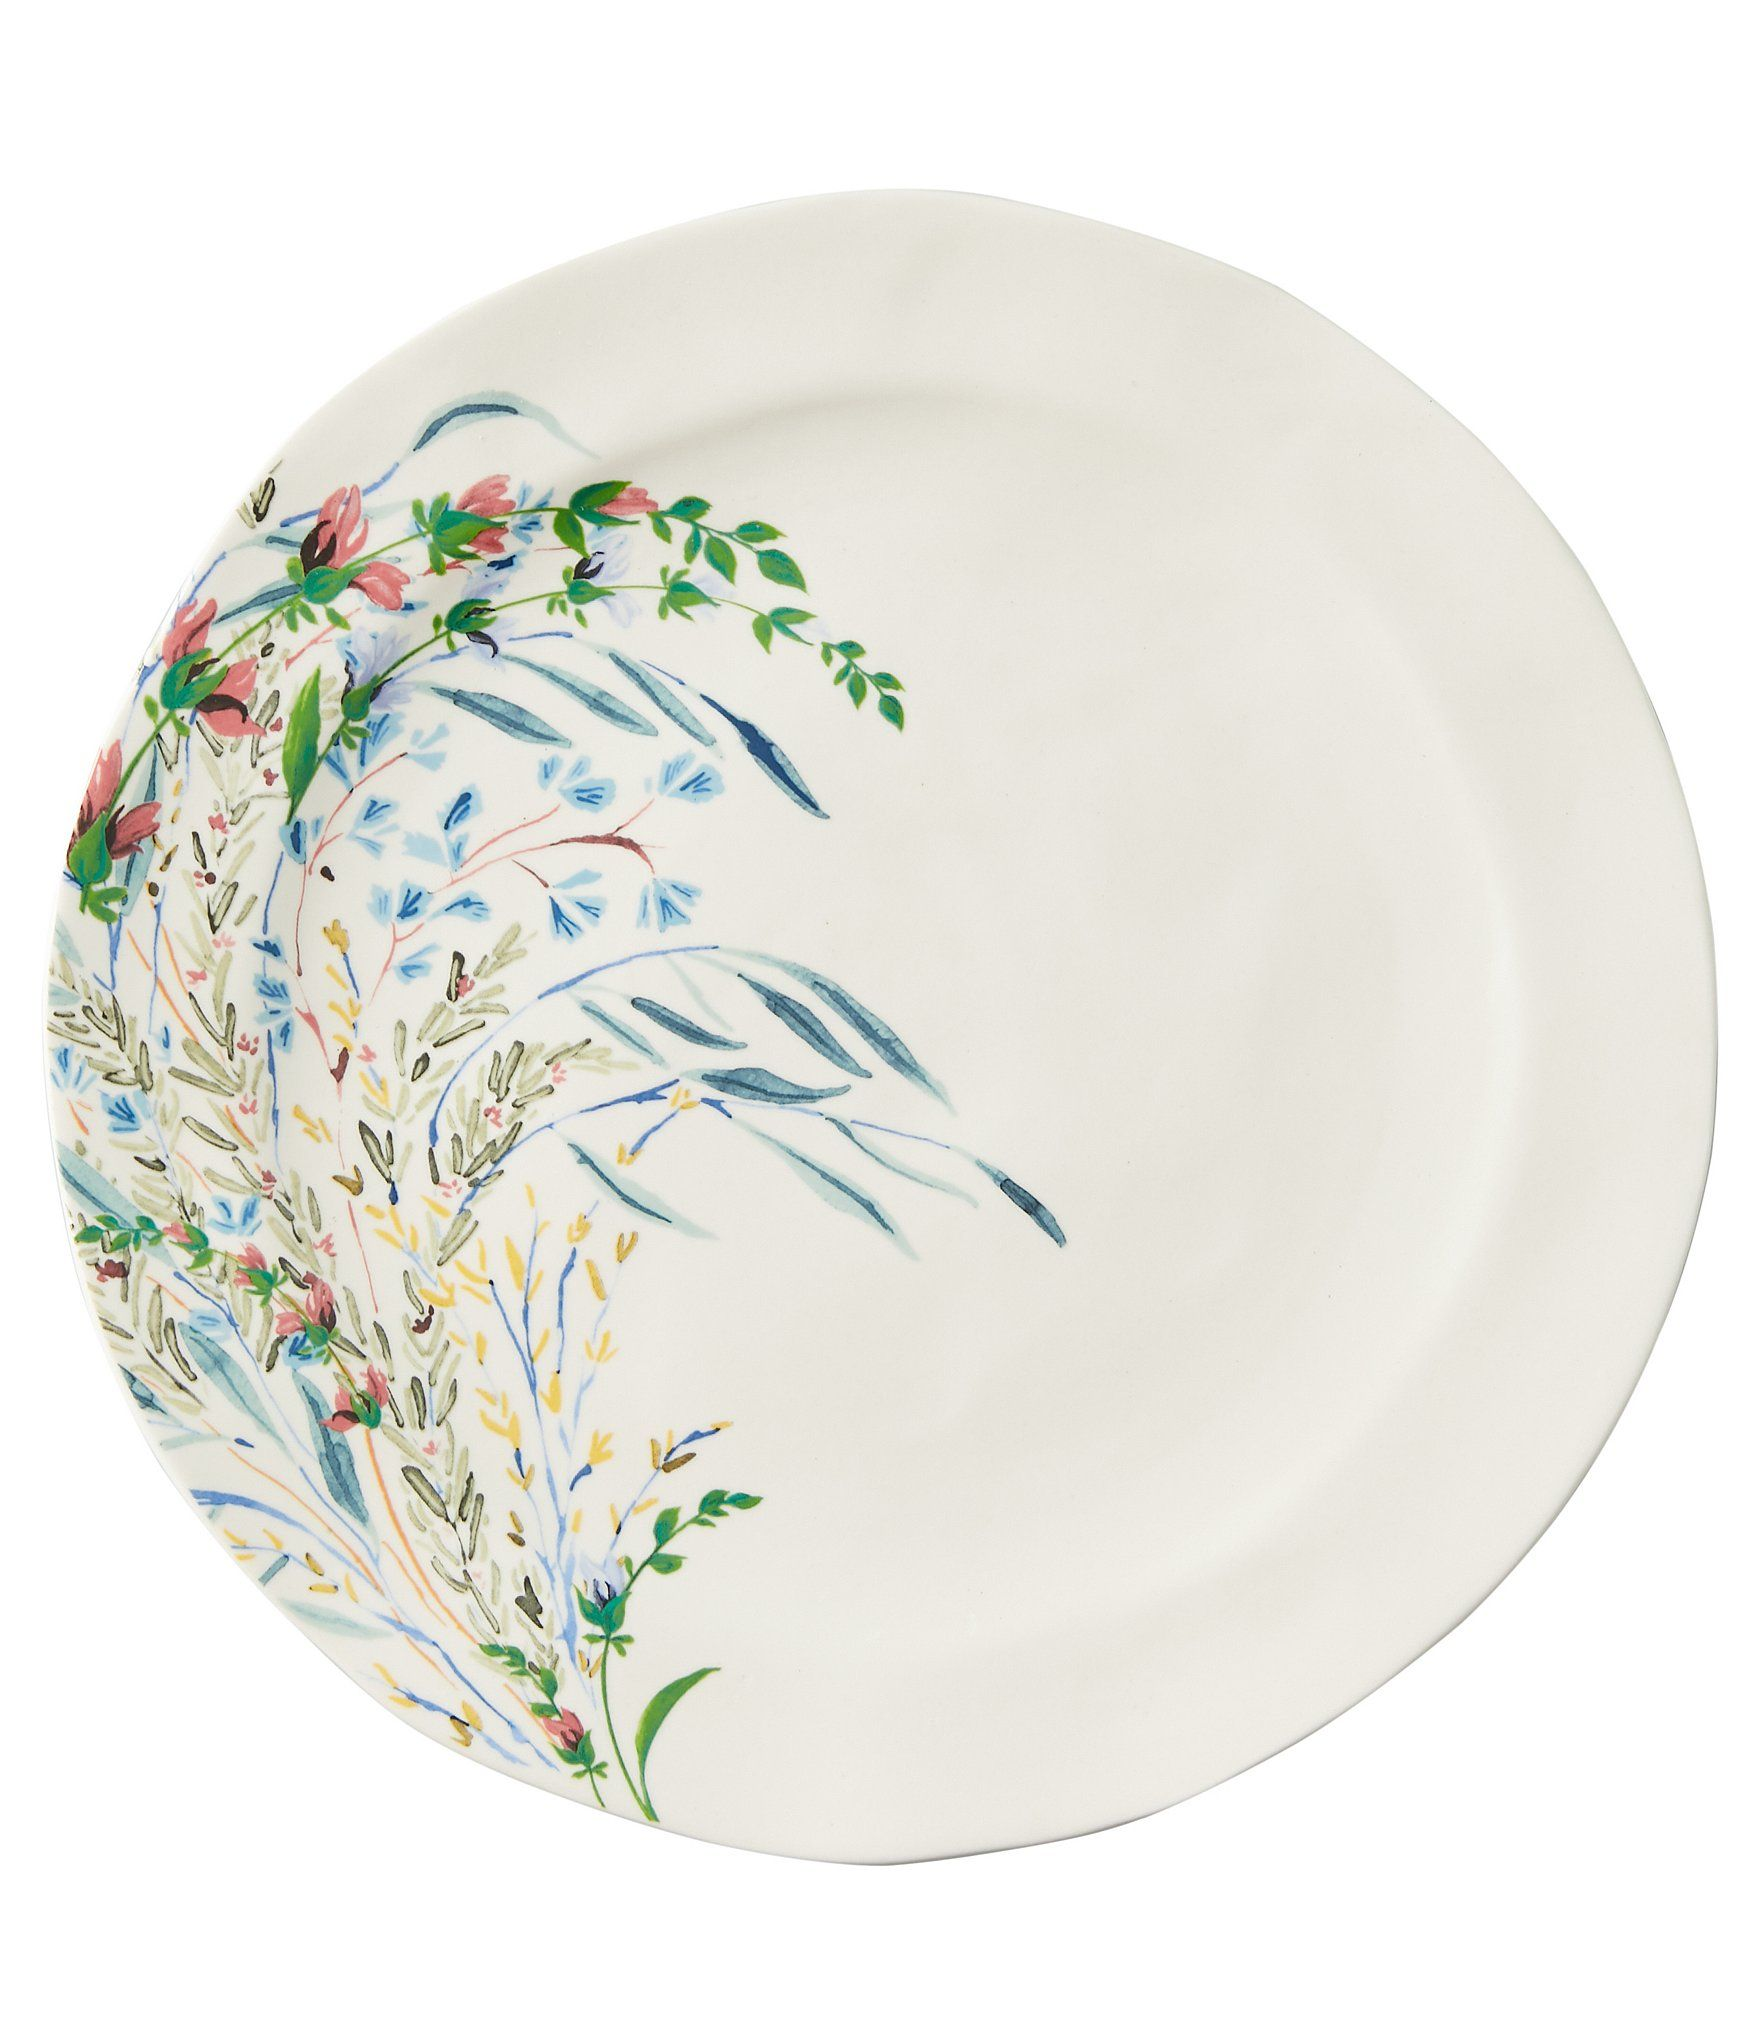 From Anthropologie Home, this set of 4 plates feature: Set of 4 dinner platesStonewareWindswept wildflower patternApprox. 10.75